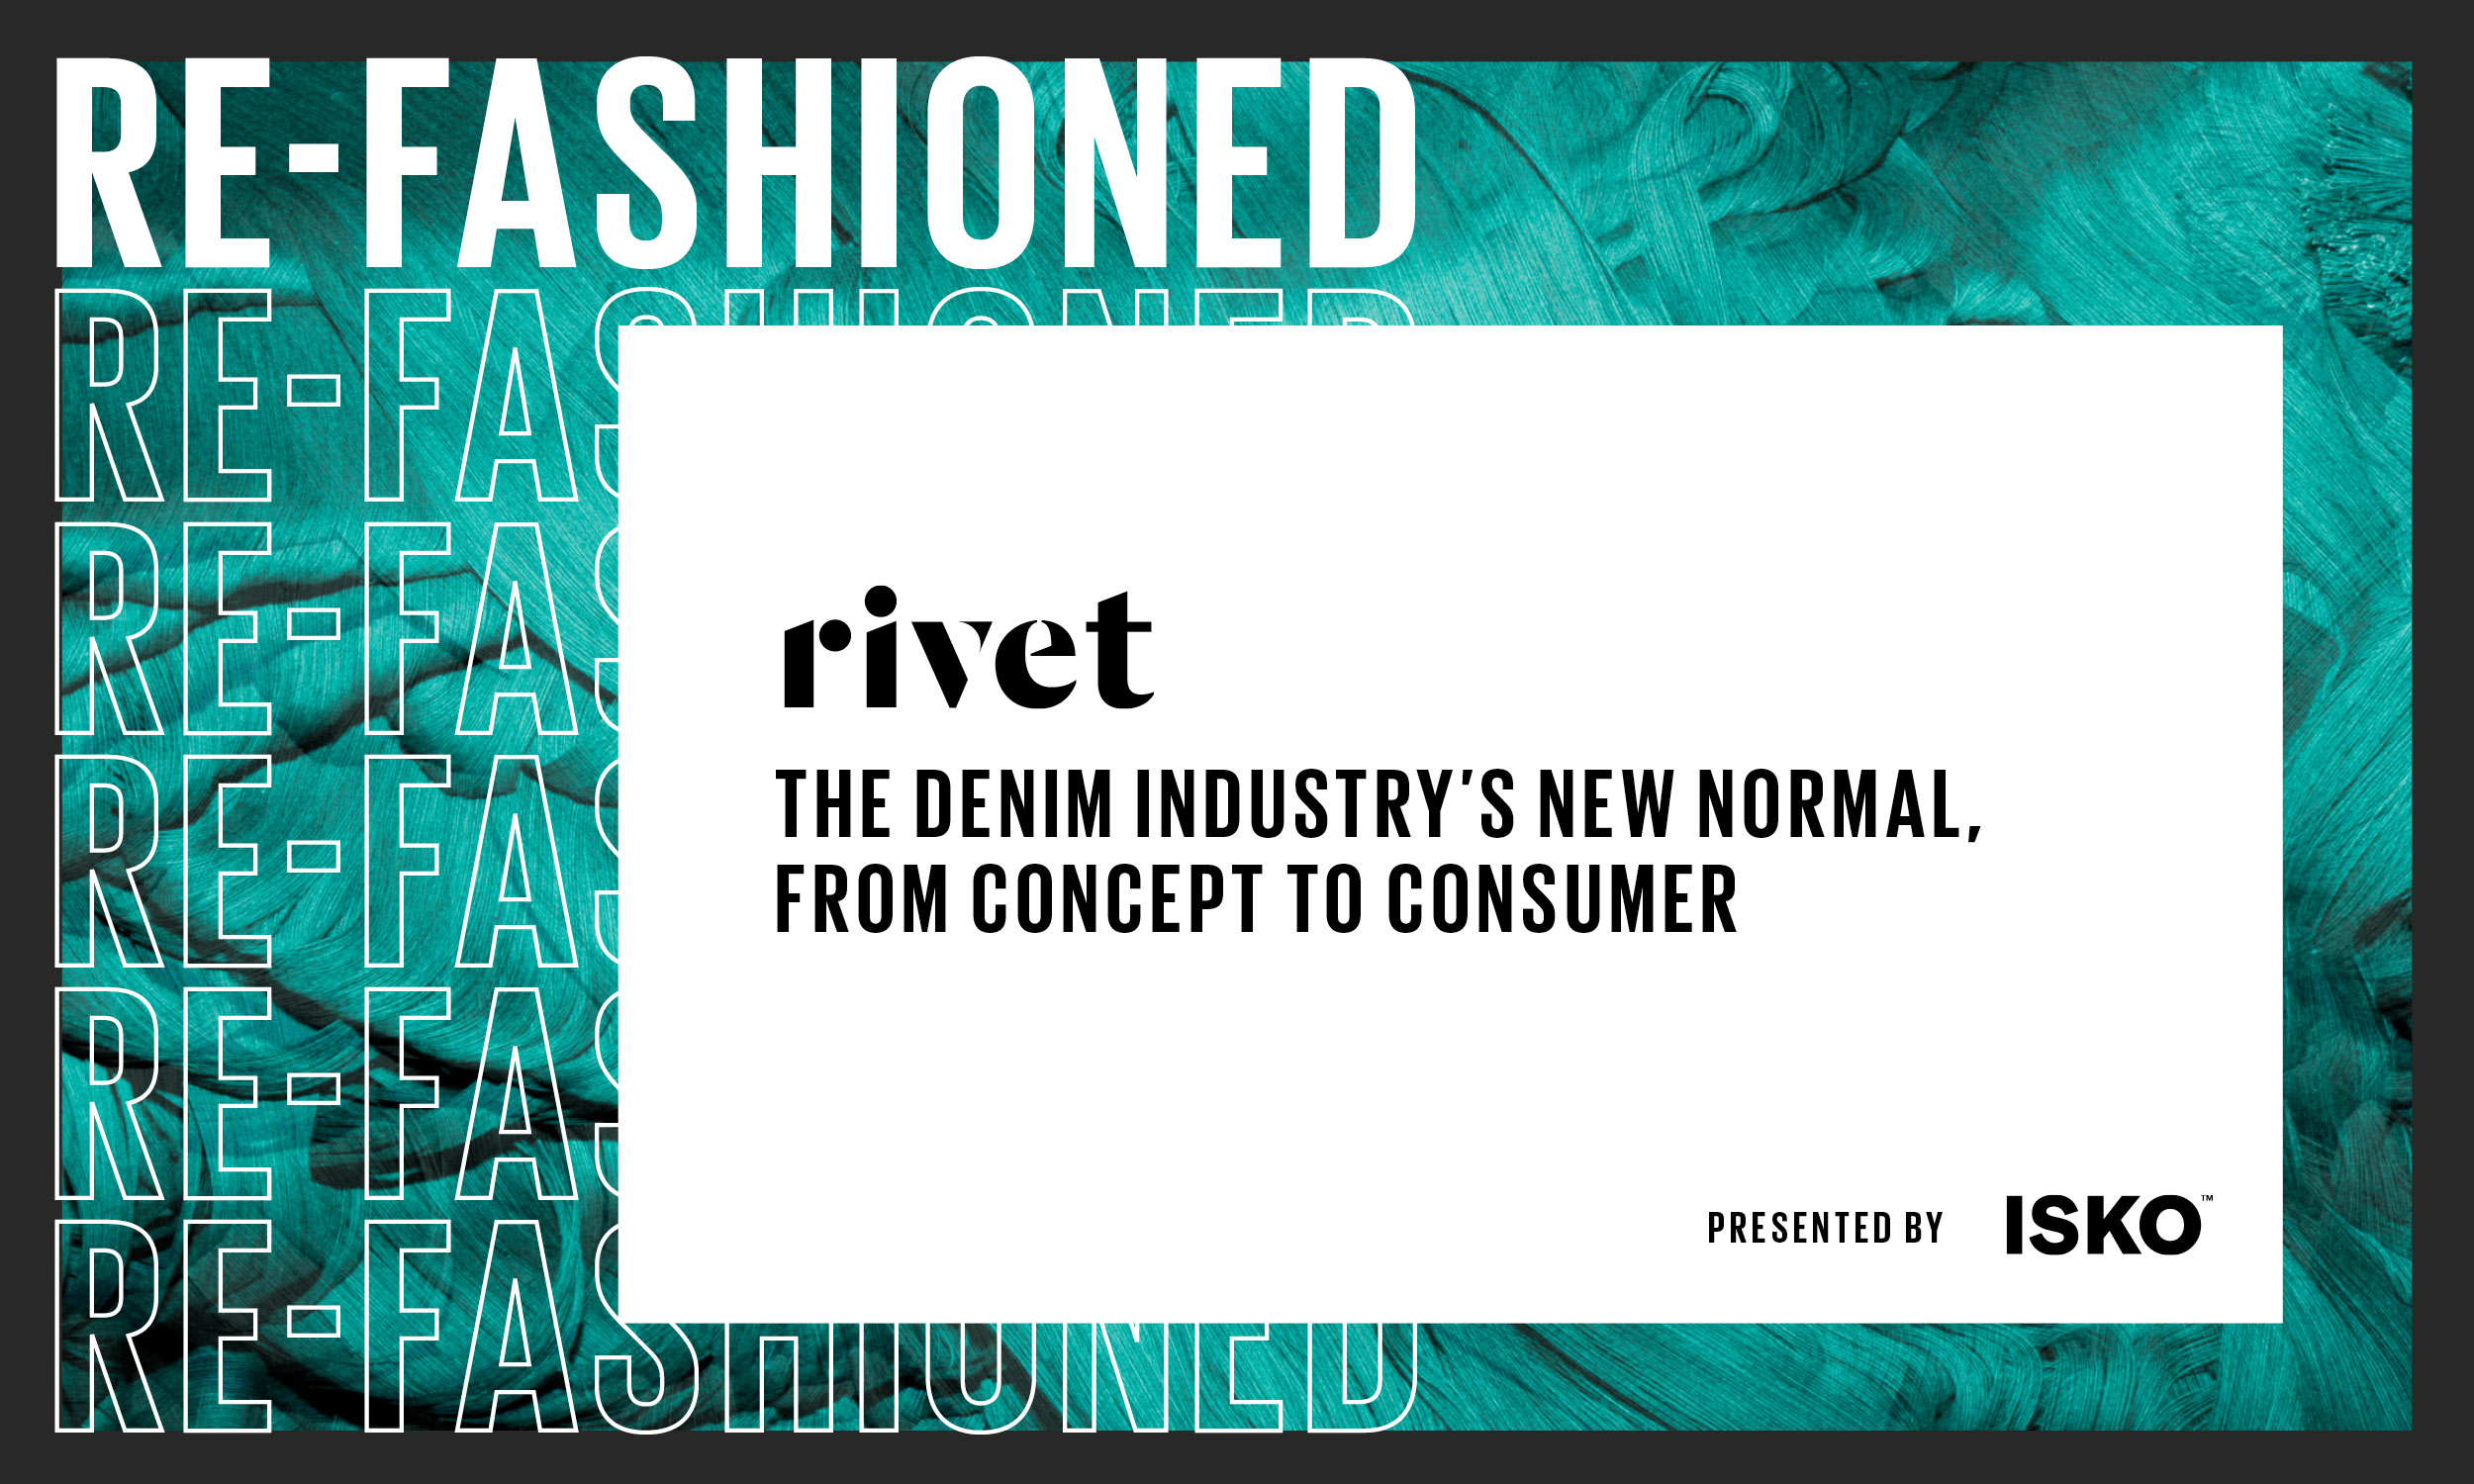 RE-FASHIONED RE-FA RE-FA rivet RE-FA THE DENIM INDUSTRY'S NEW NORMAL, FROM CONCEPT TO CONSUMER RE-FA RE-FAS PRESENTED BY ISKO NIUNED